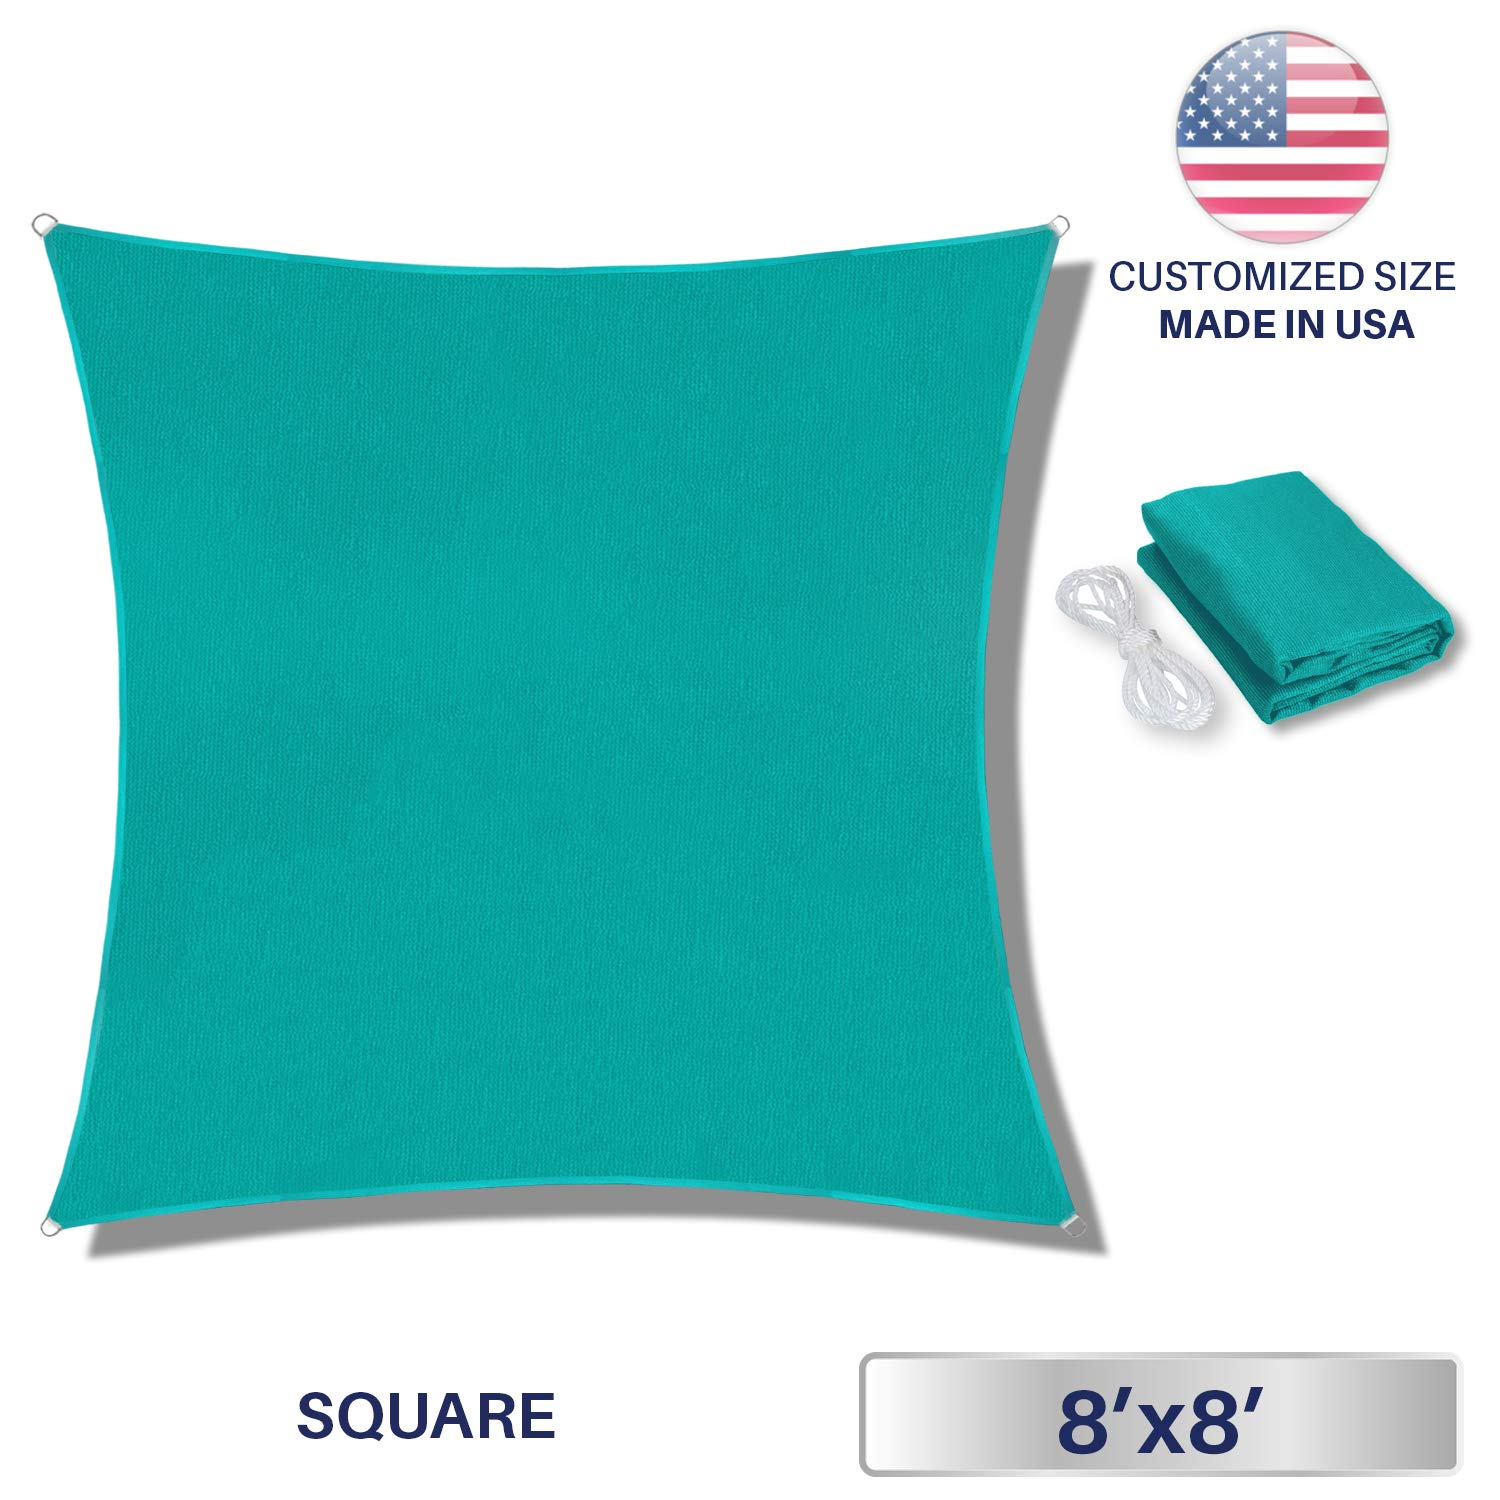 Windscreen4less 8 x 8 Square Sun Shade Sail – Solid Turquoise Durable UV Shelter Canopy for Patio Outdoor Backyard – Custom